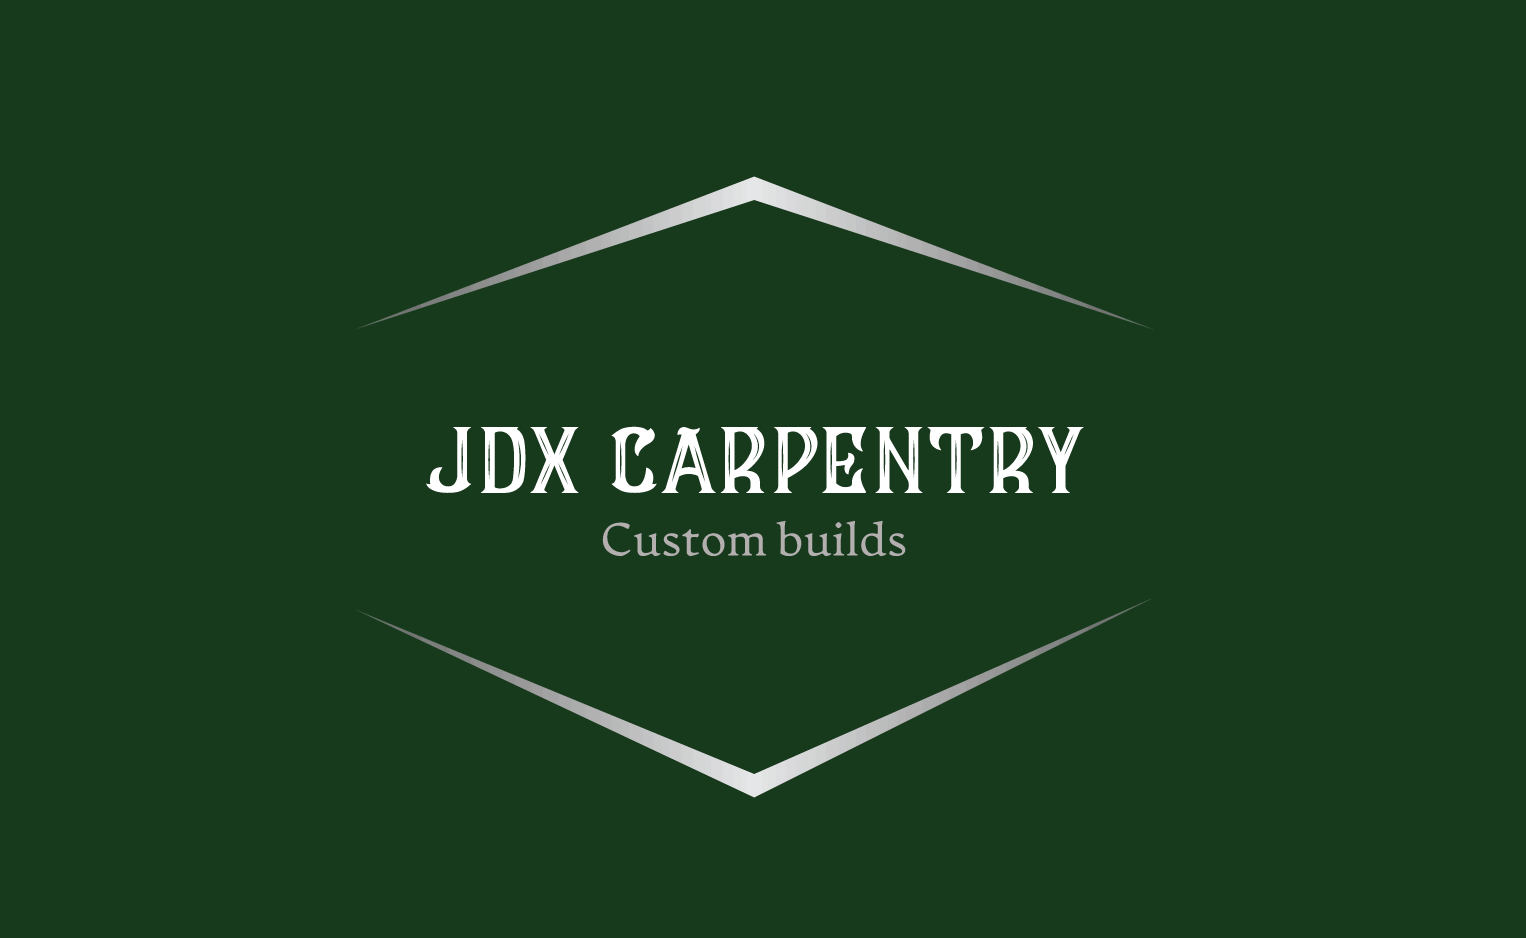 Sample woodworking logo made with Looka - JDX Carpentry